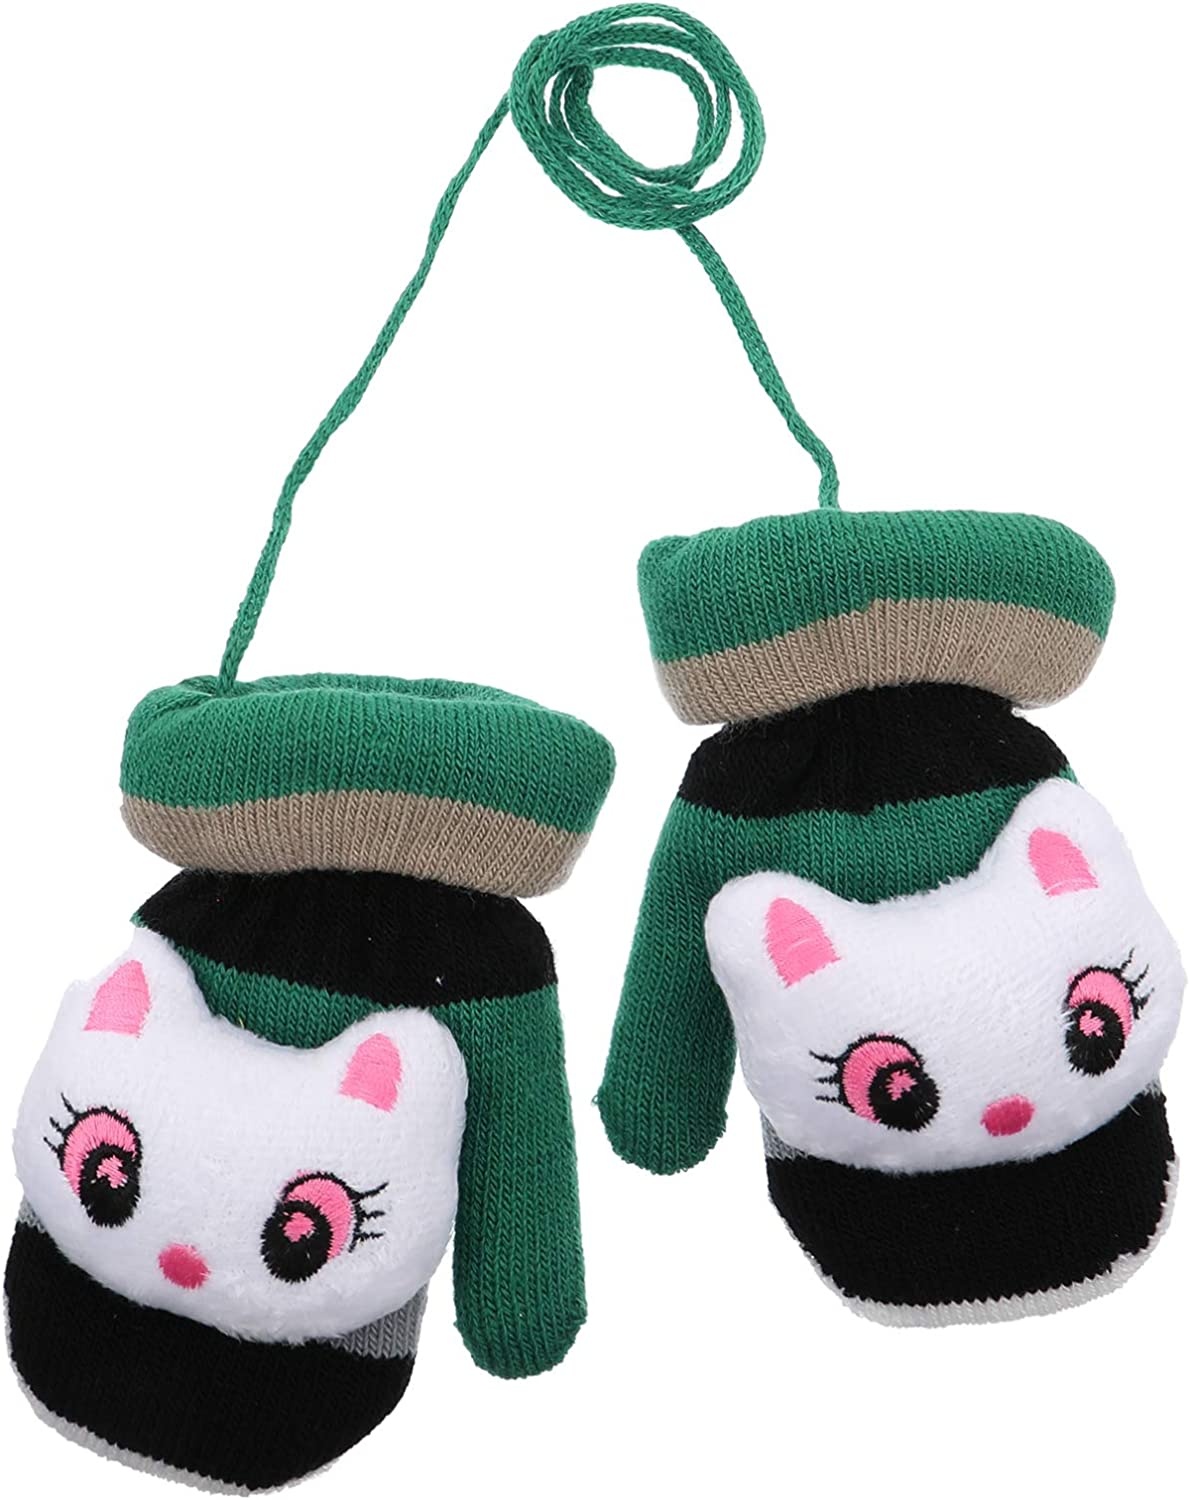 SOIMISS Toddler Mittens on String Winter Warm Knit Mittens with String Plush Fleece Lined Cartoon Animal Gloves Magic Ski Gloves Mittens for Infant Baby Style 1